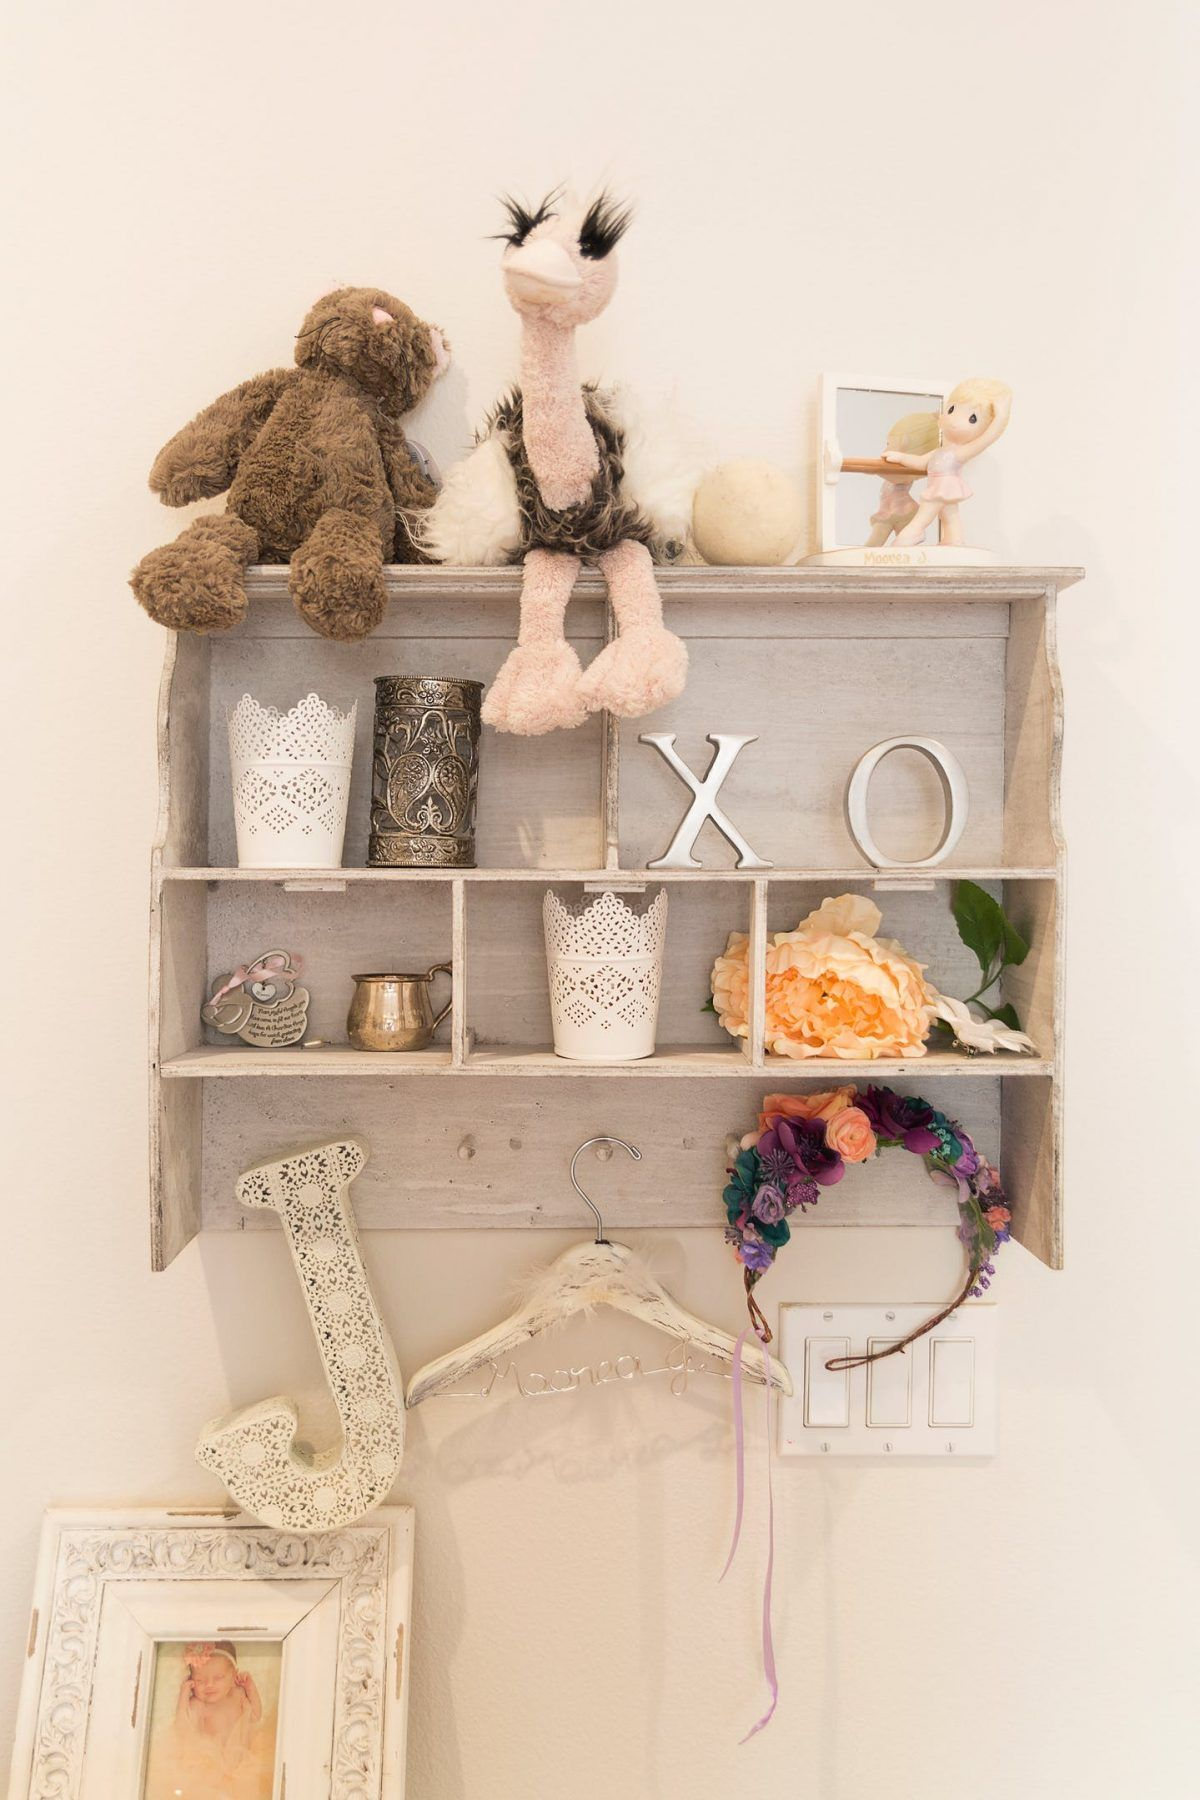 Decorative Items On The Shelves In The Nursery | Inspiration